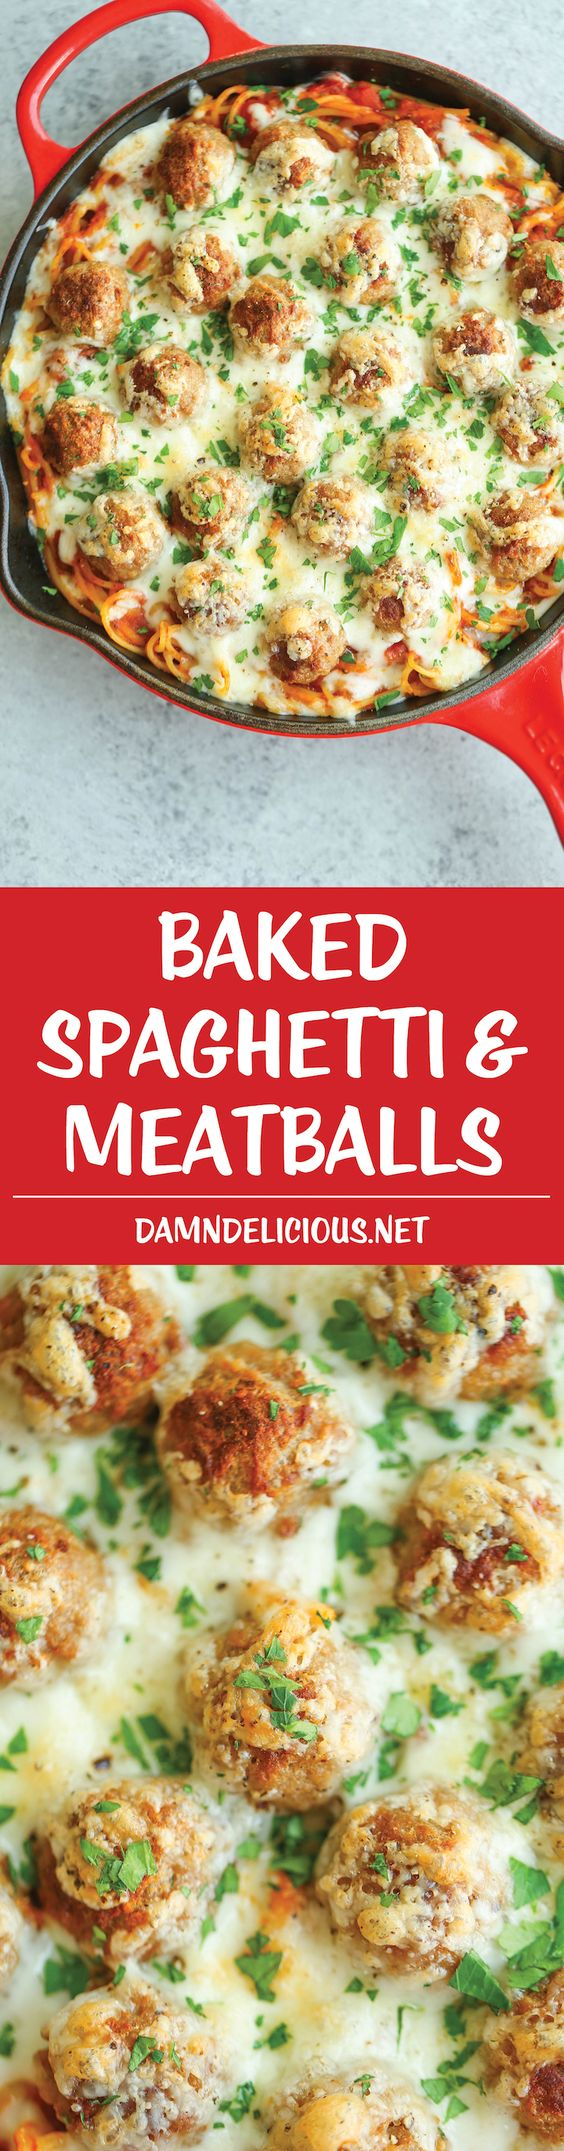 Baked Spaghetti and Meatballs | Recipe | Baked Spaghetti And Meatballs ...